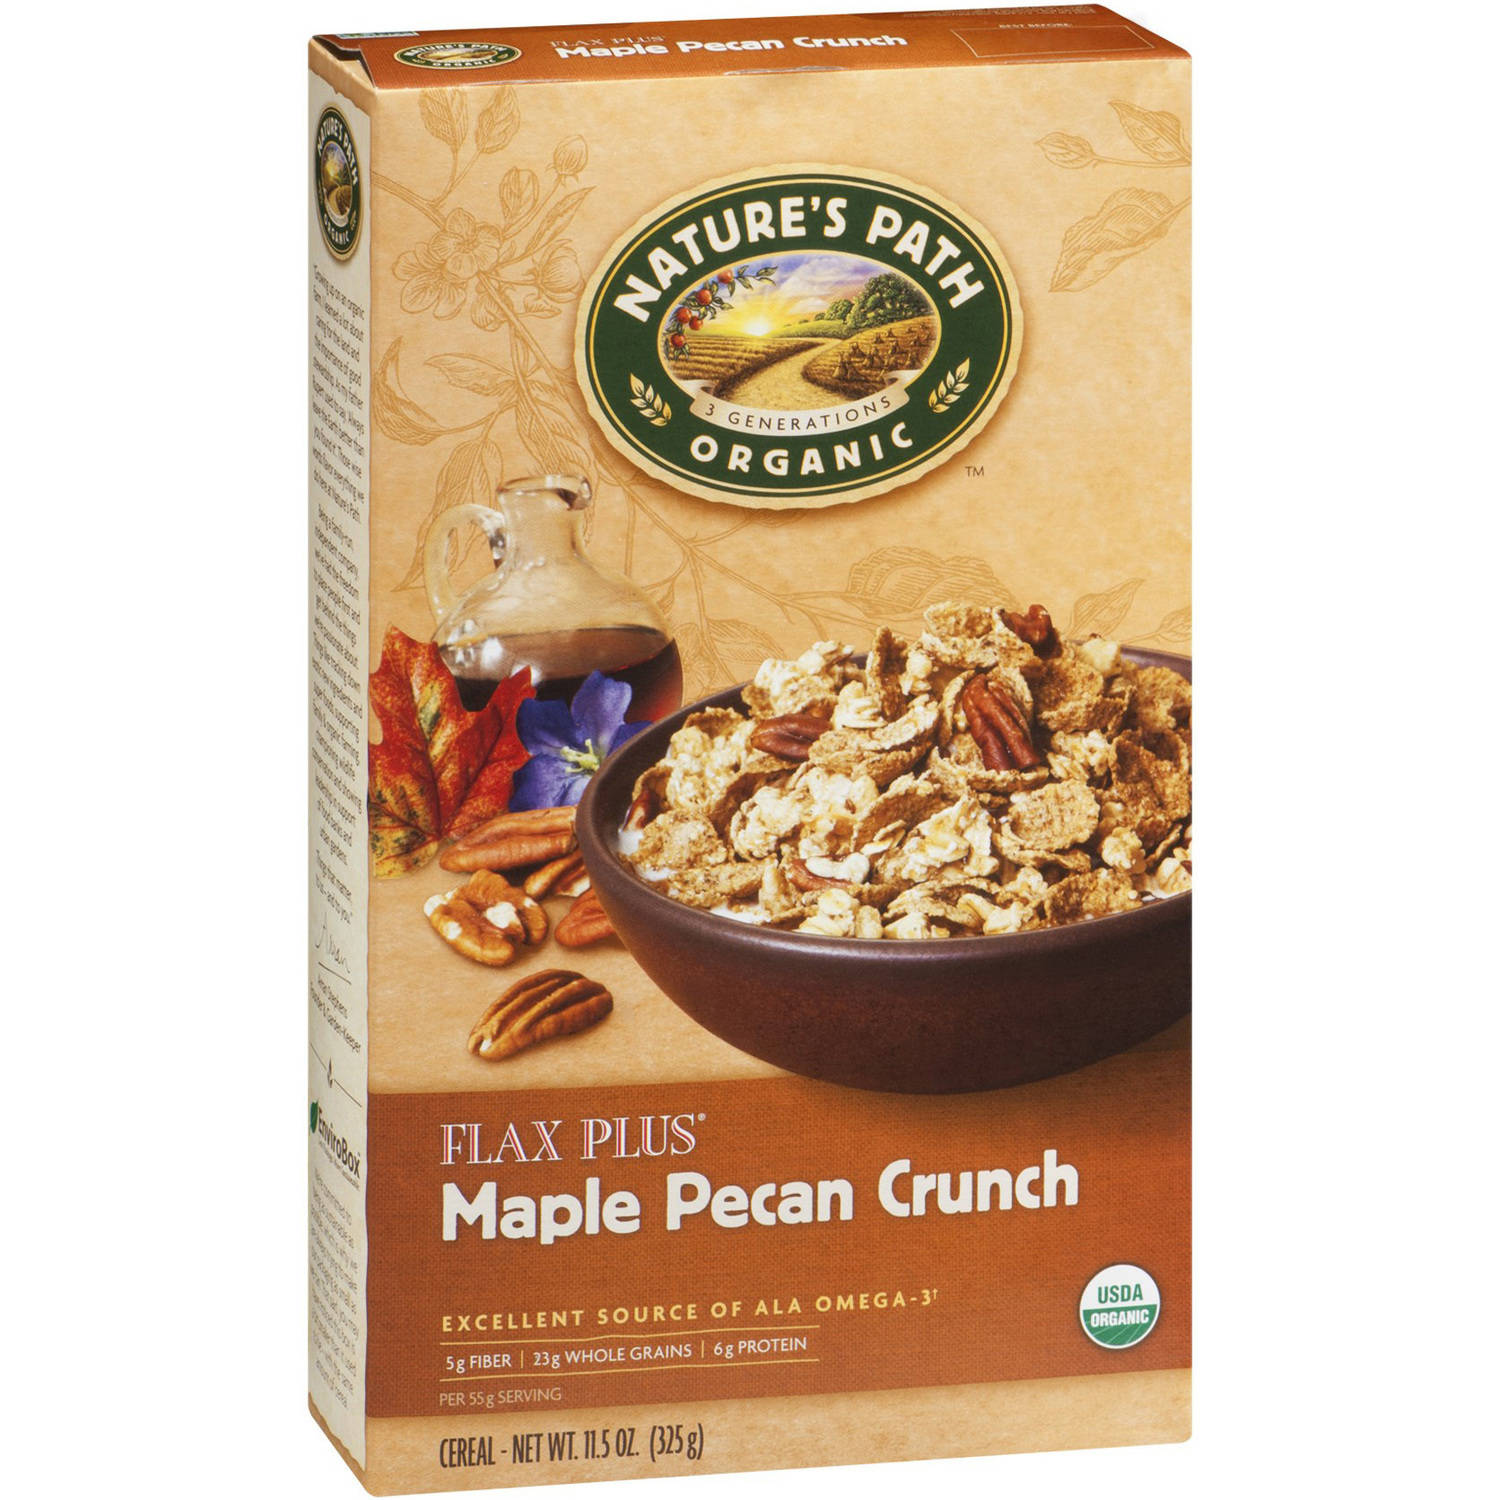 Nature's Path Organic Flax Plus Maple Pecan Crunch Cereal, 11.5 oz, (Pack of 12)